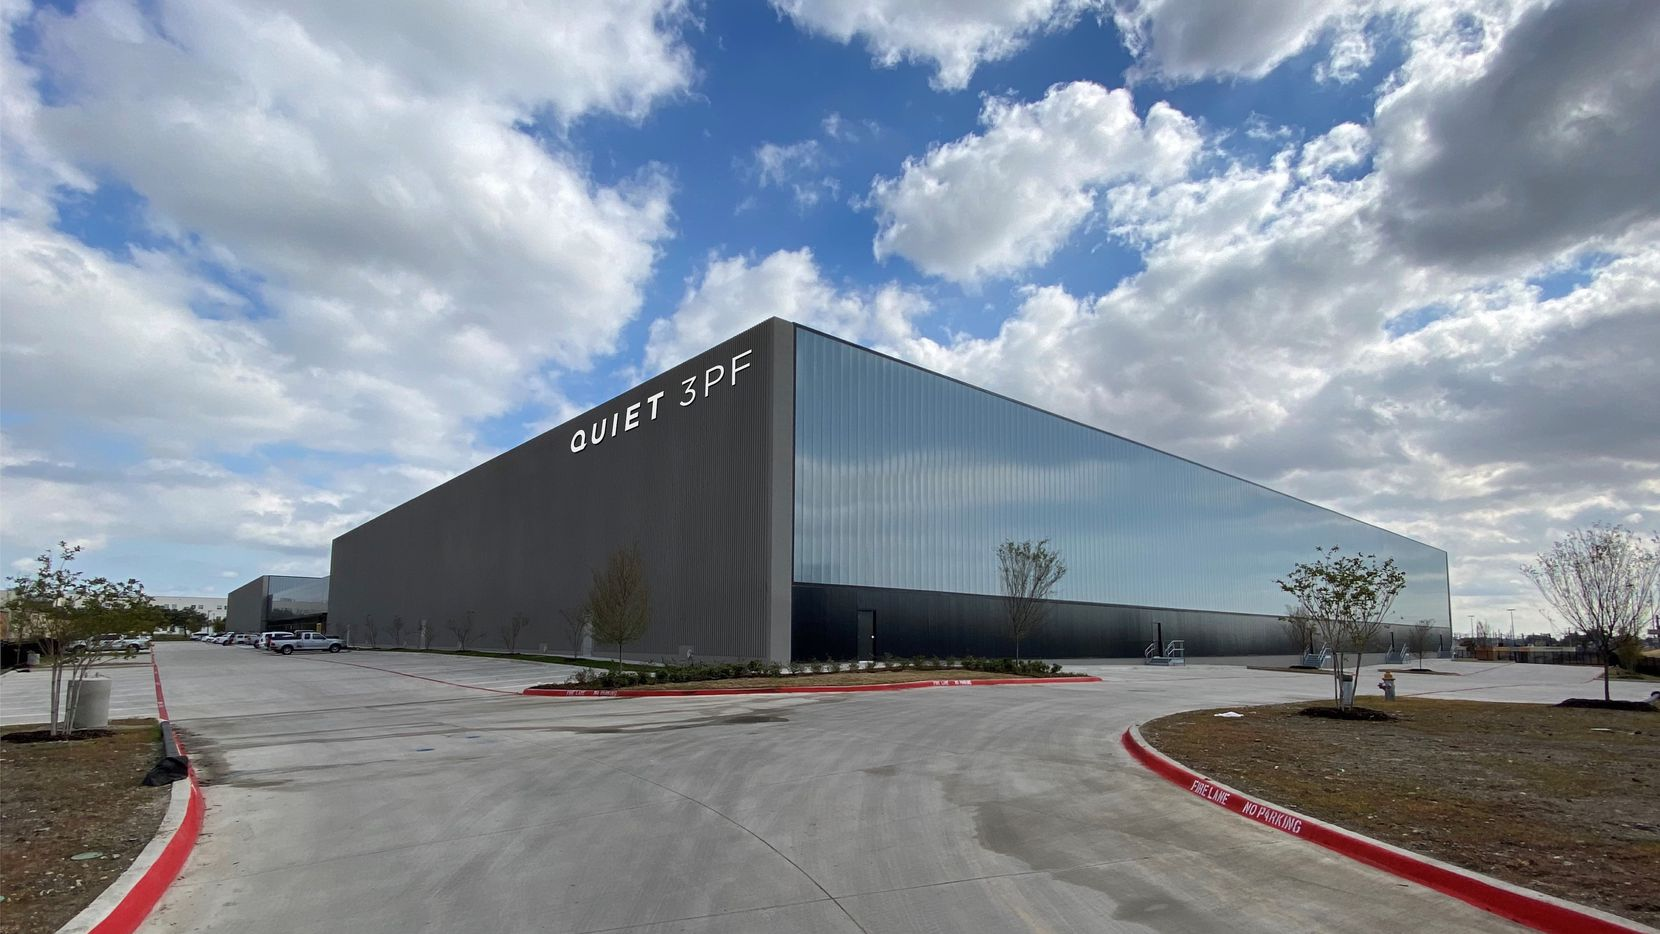 The fulfillment center will employ more than 400 workers.